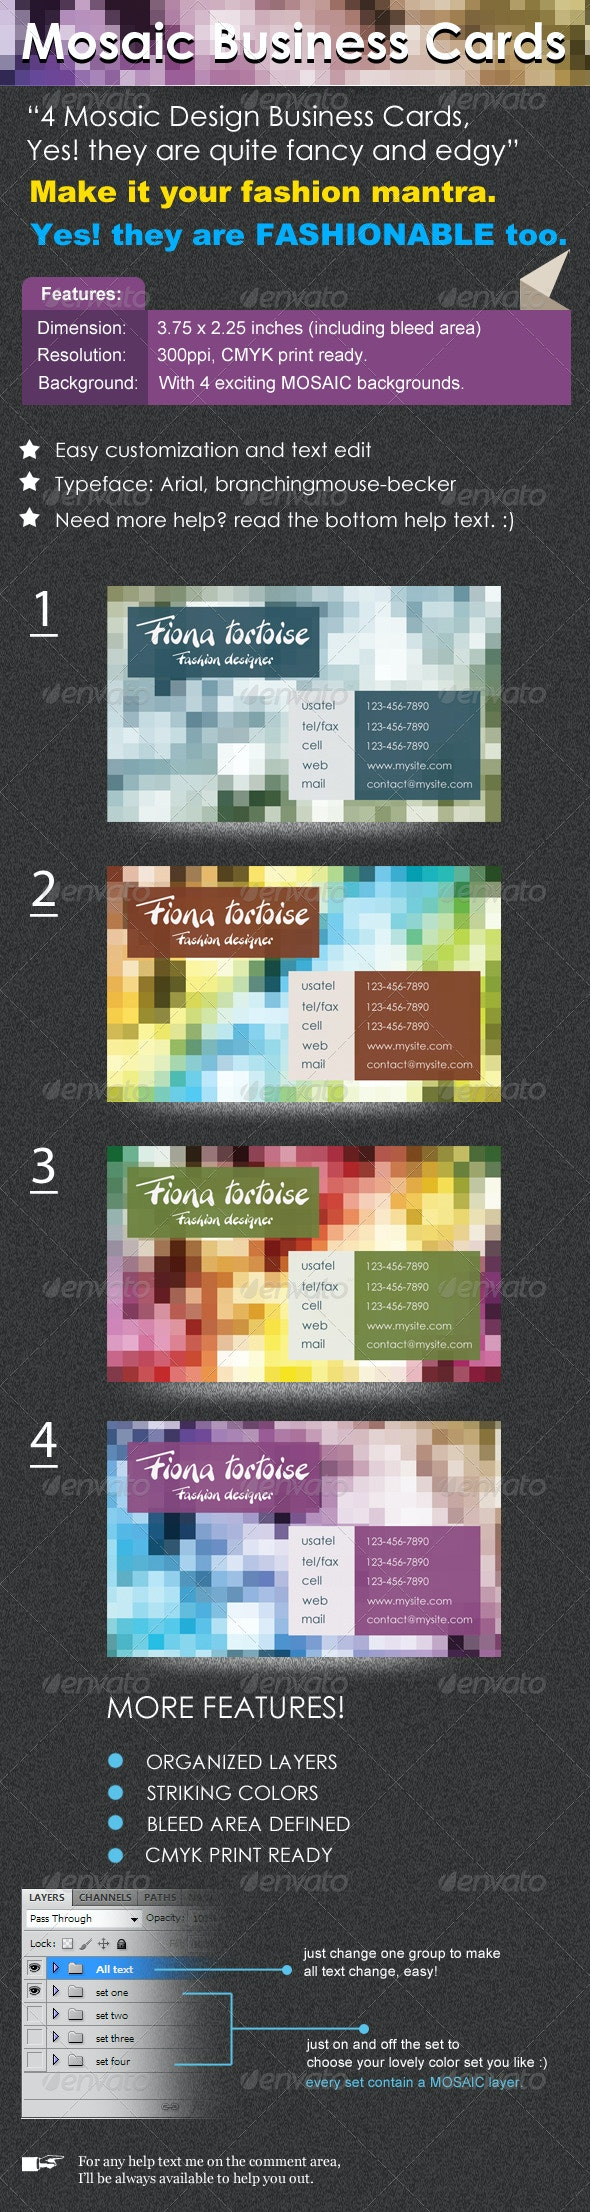 Mosaic Business Cards - Creative Business Cards